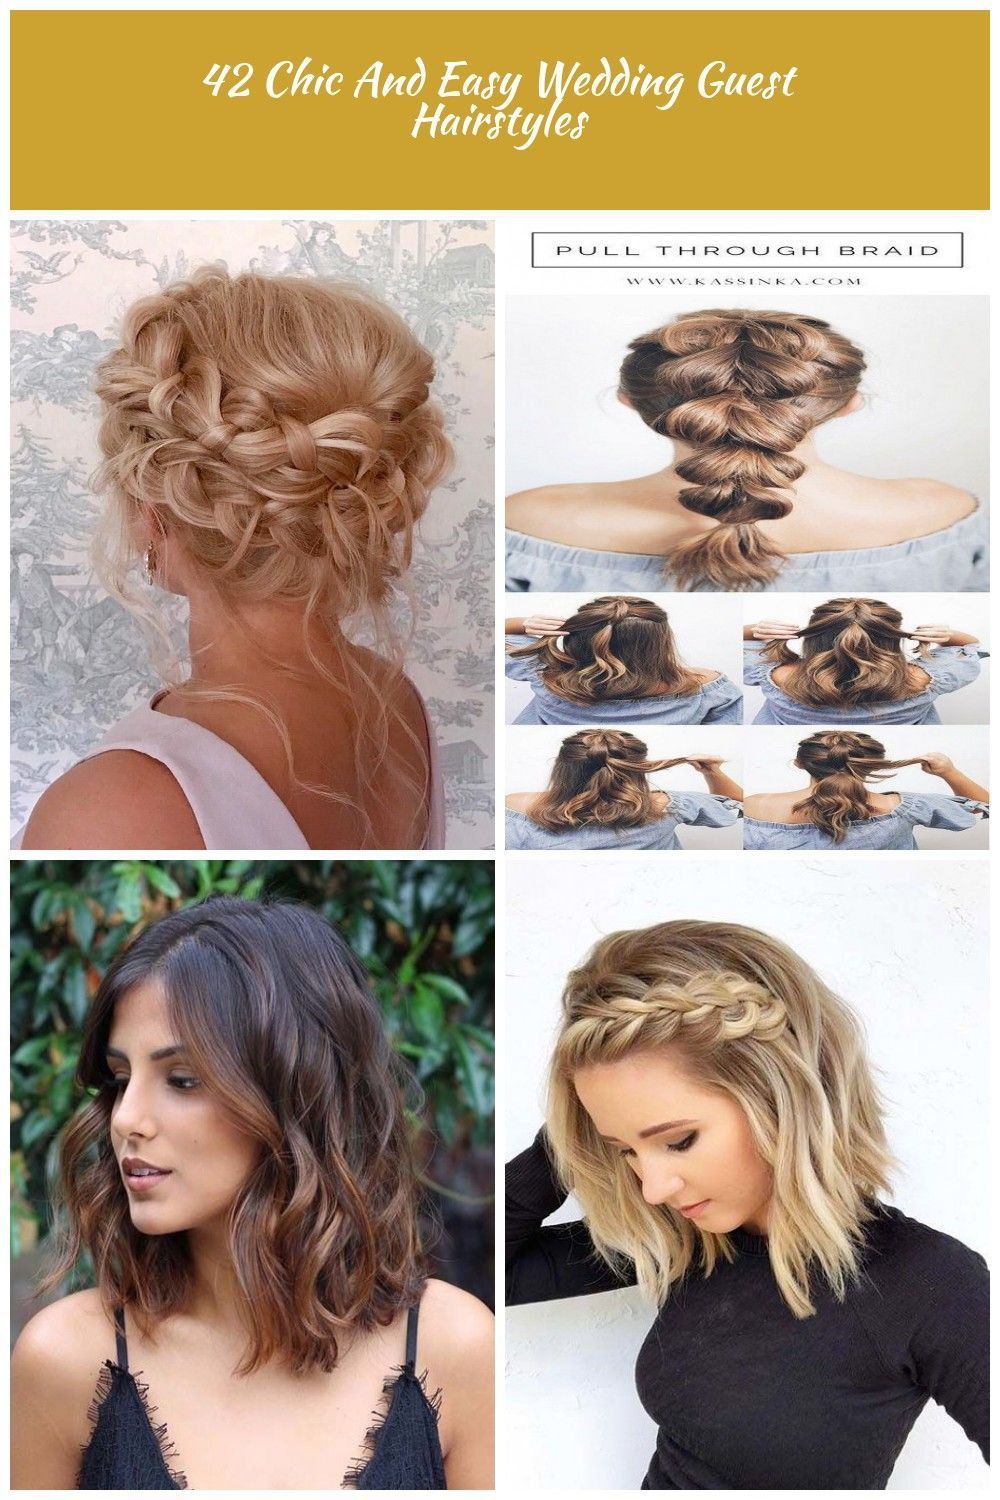 36 Chic And Easy Wedding Guest Hairstyles Wedding Guest